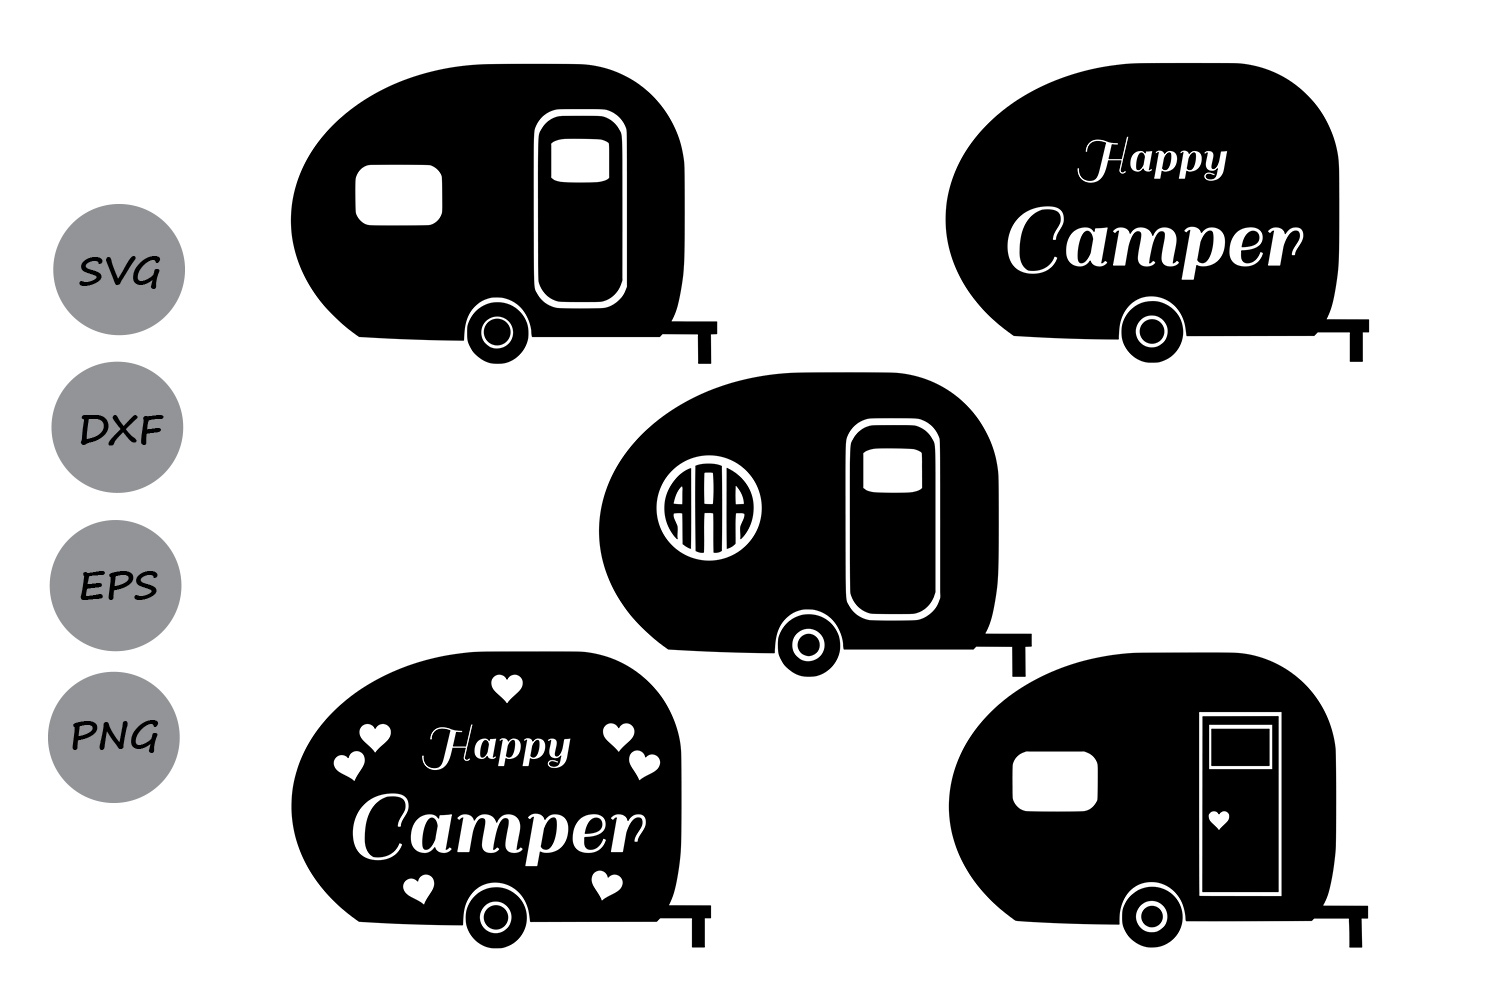 Download Free Camper Graphic By Cosmosfineart Creative Fabrica for Cricut Explore, Silhouette and other cutting machines.